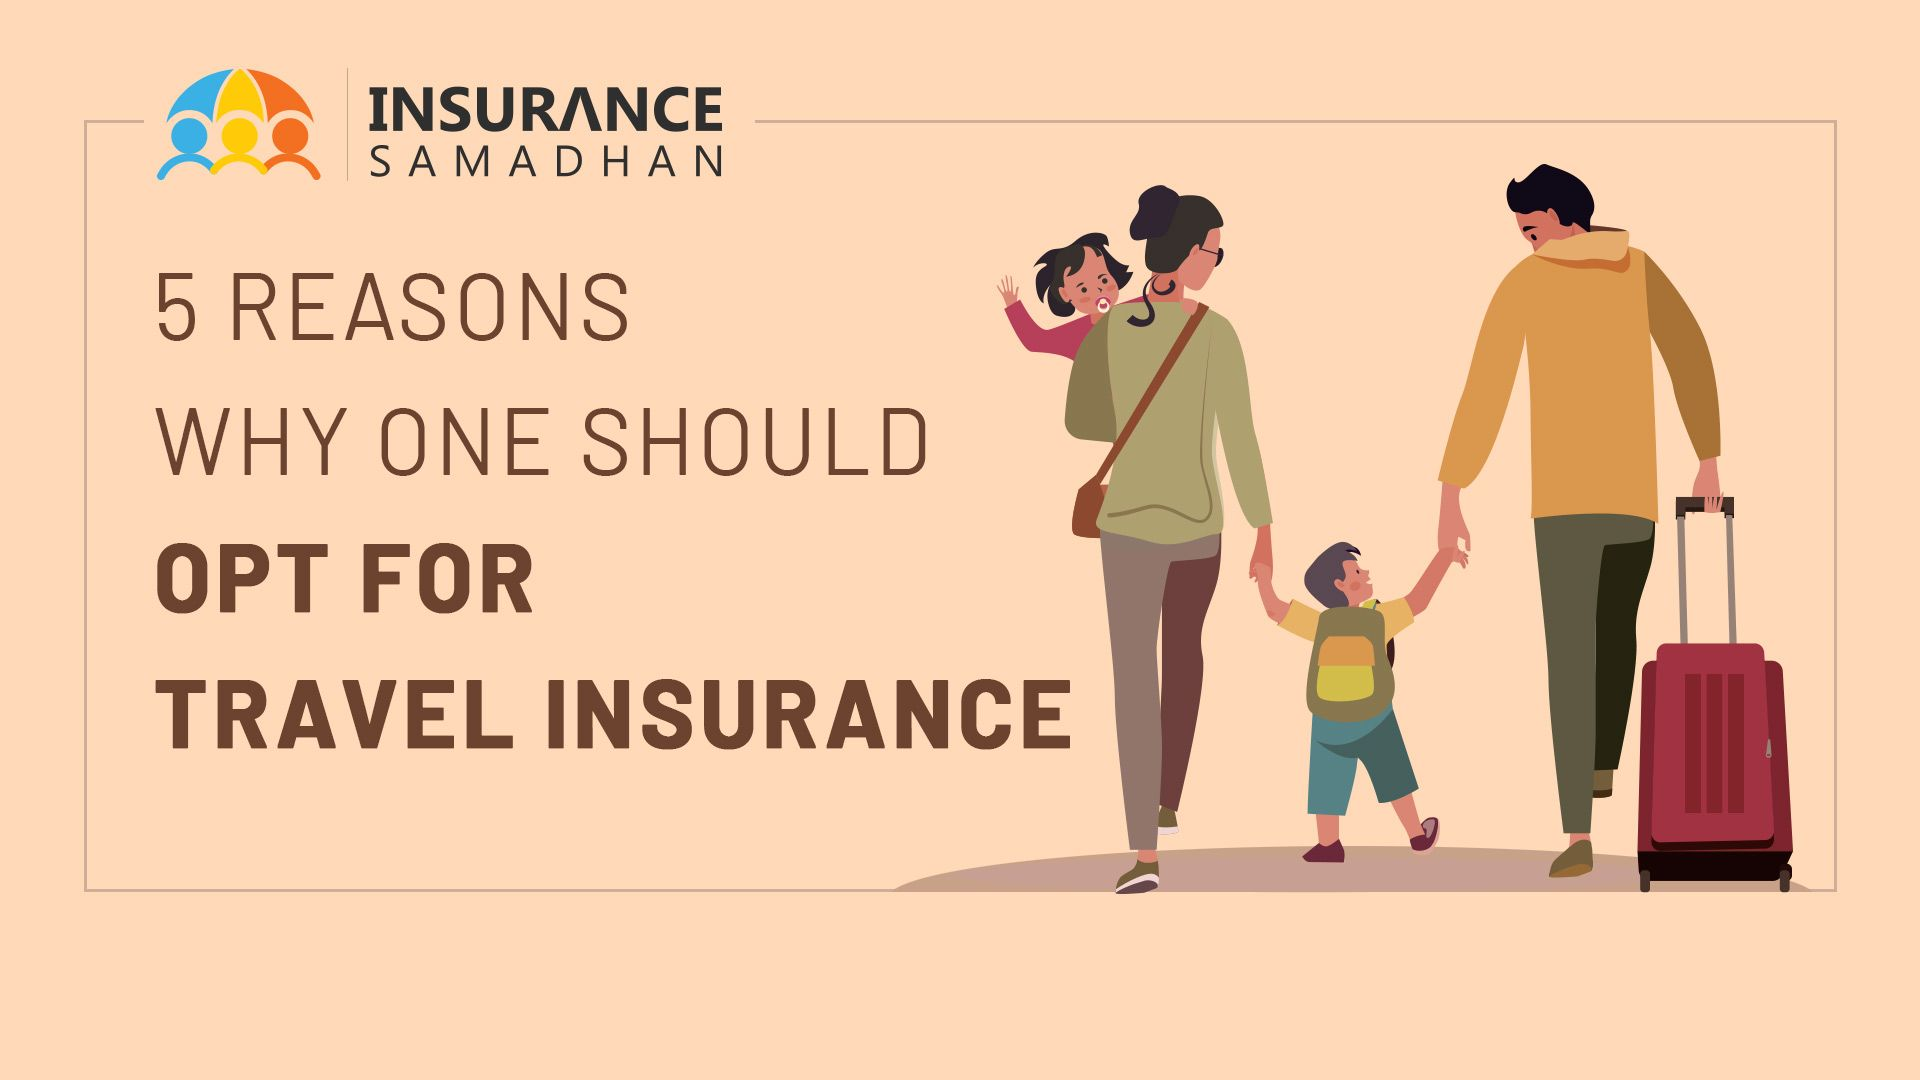 5 Reasons Why One Should Opt for Travel Insurance for All International Trips